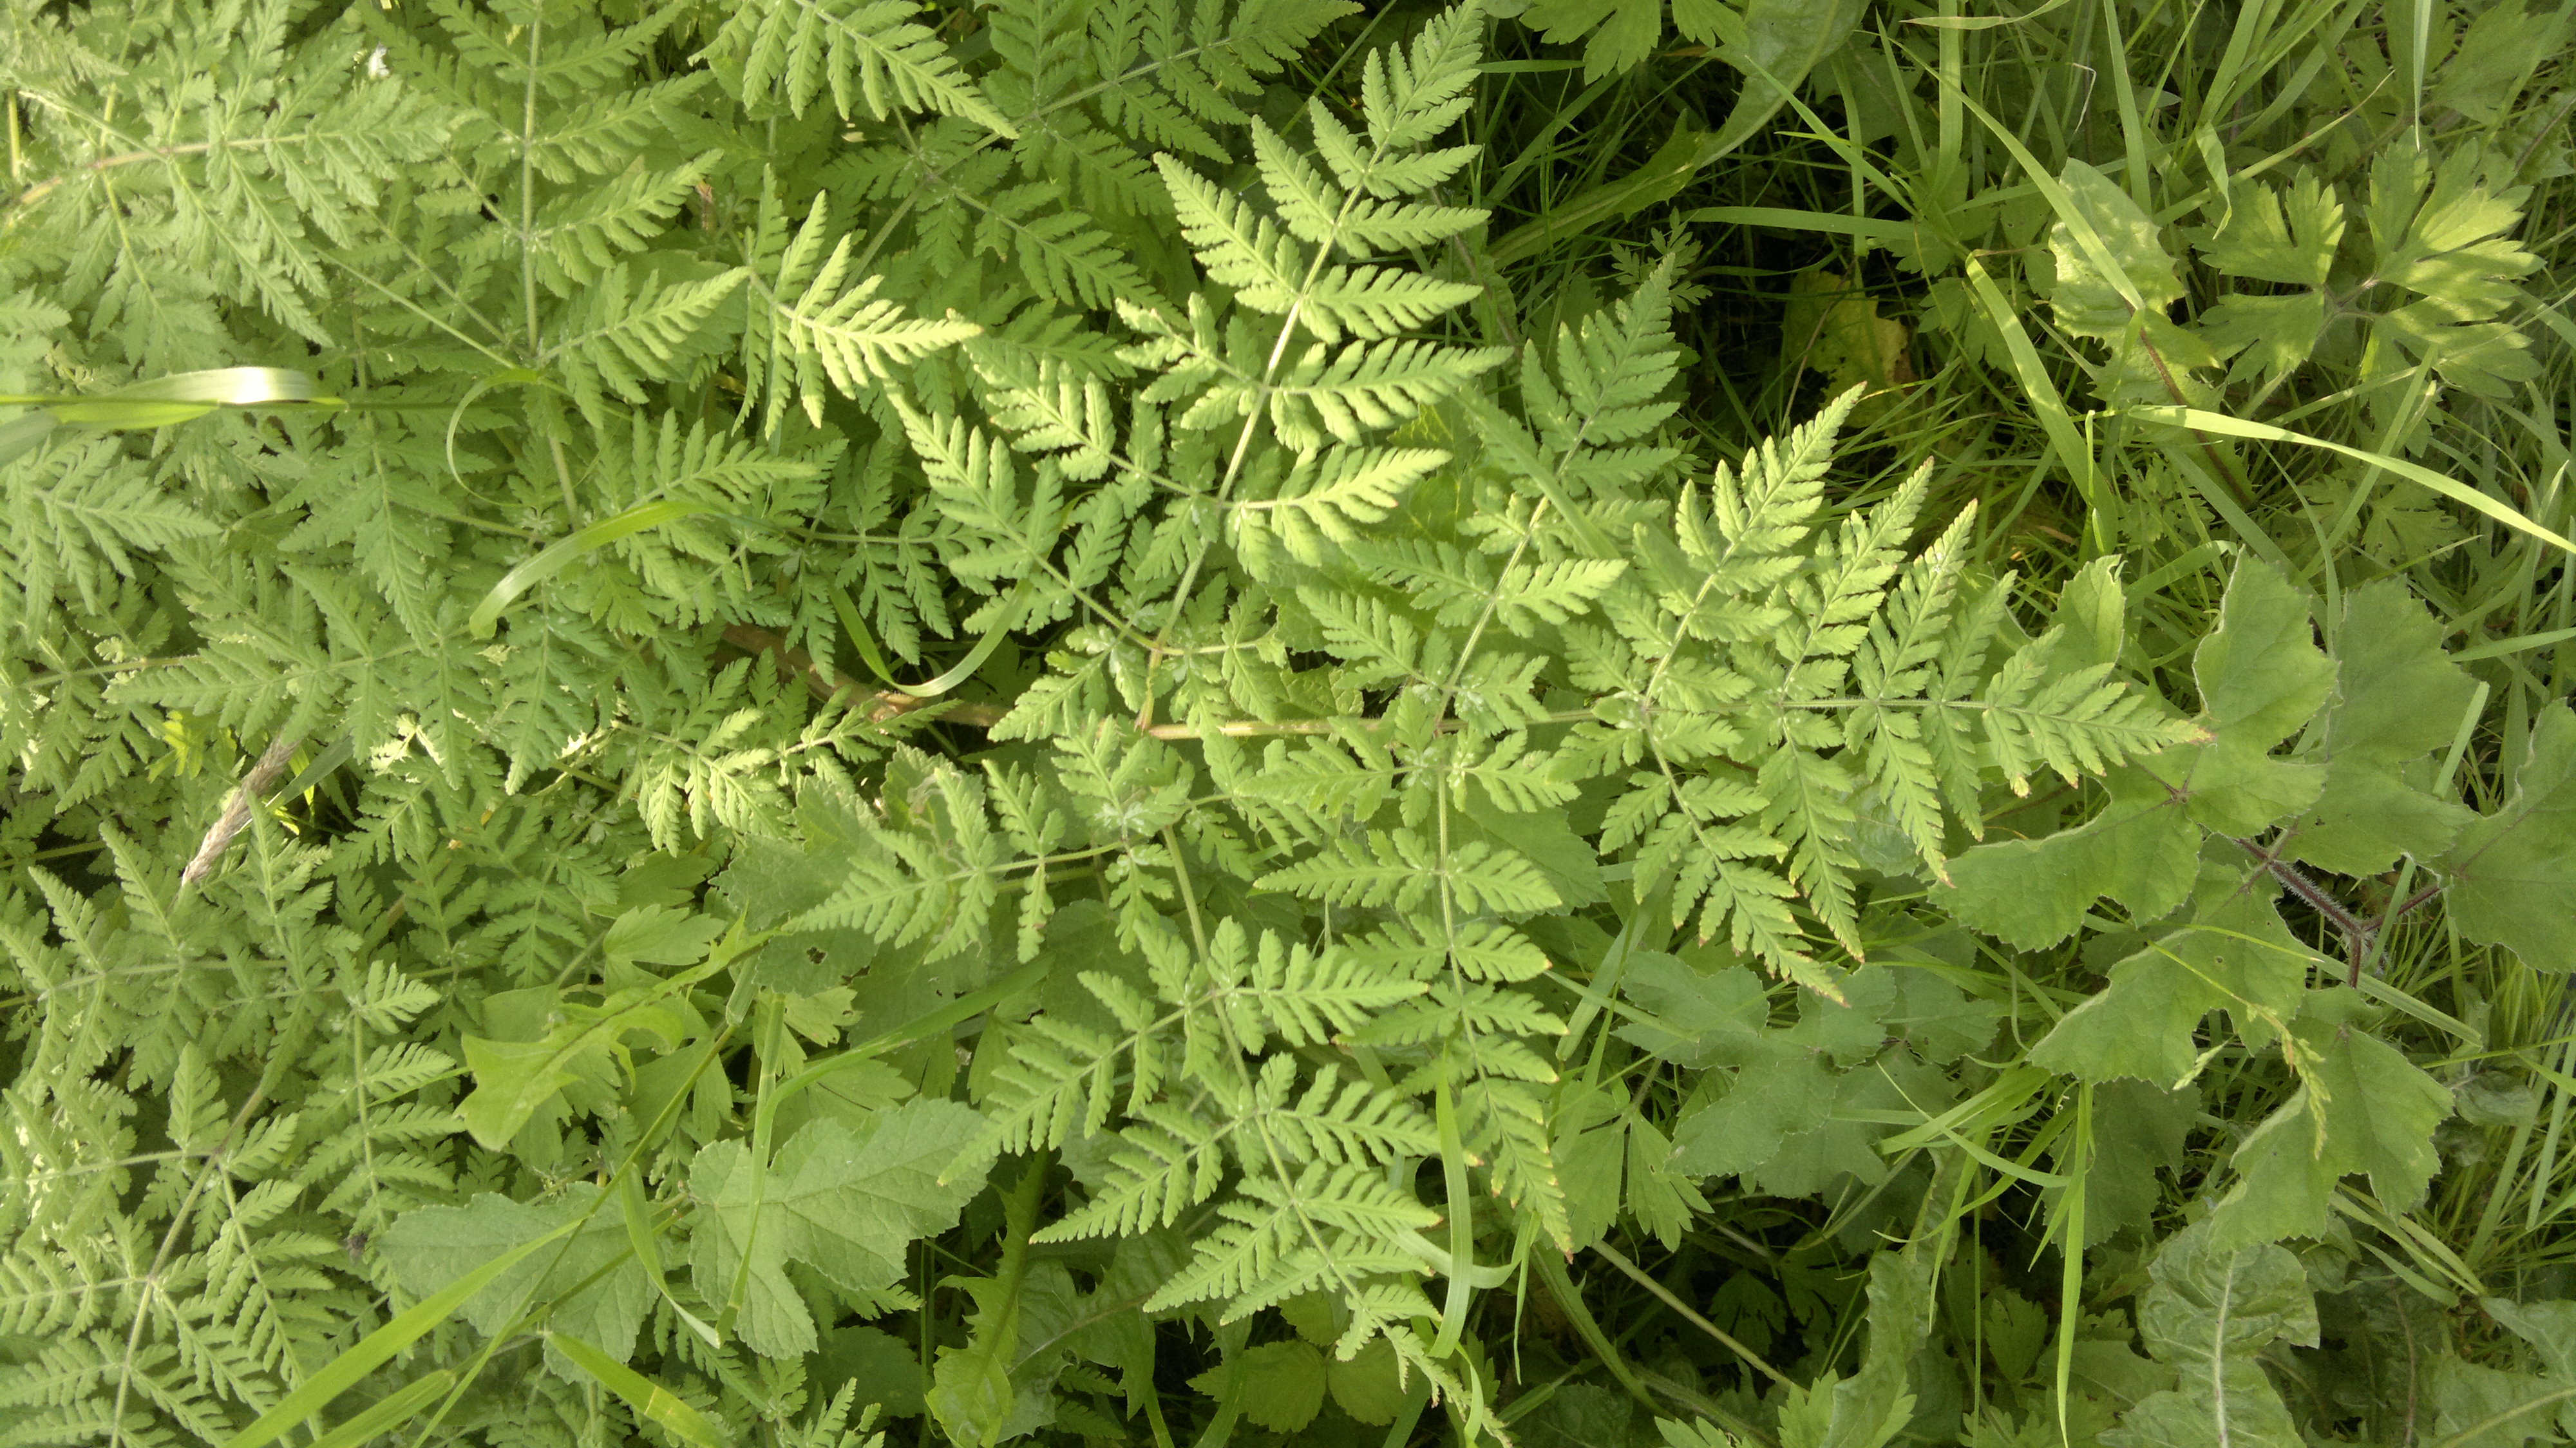 Sweet cicely